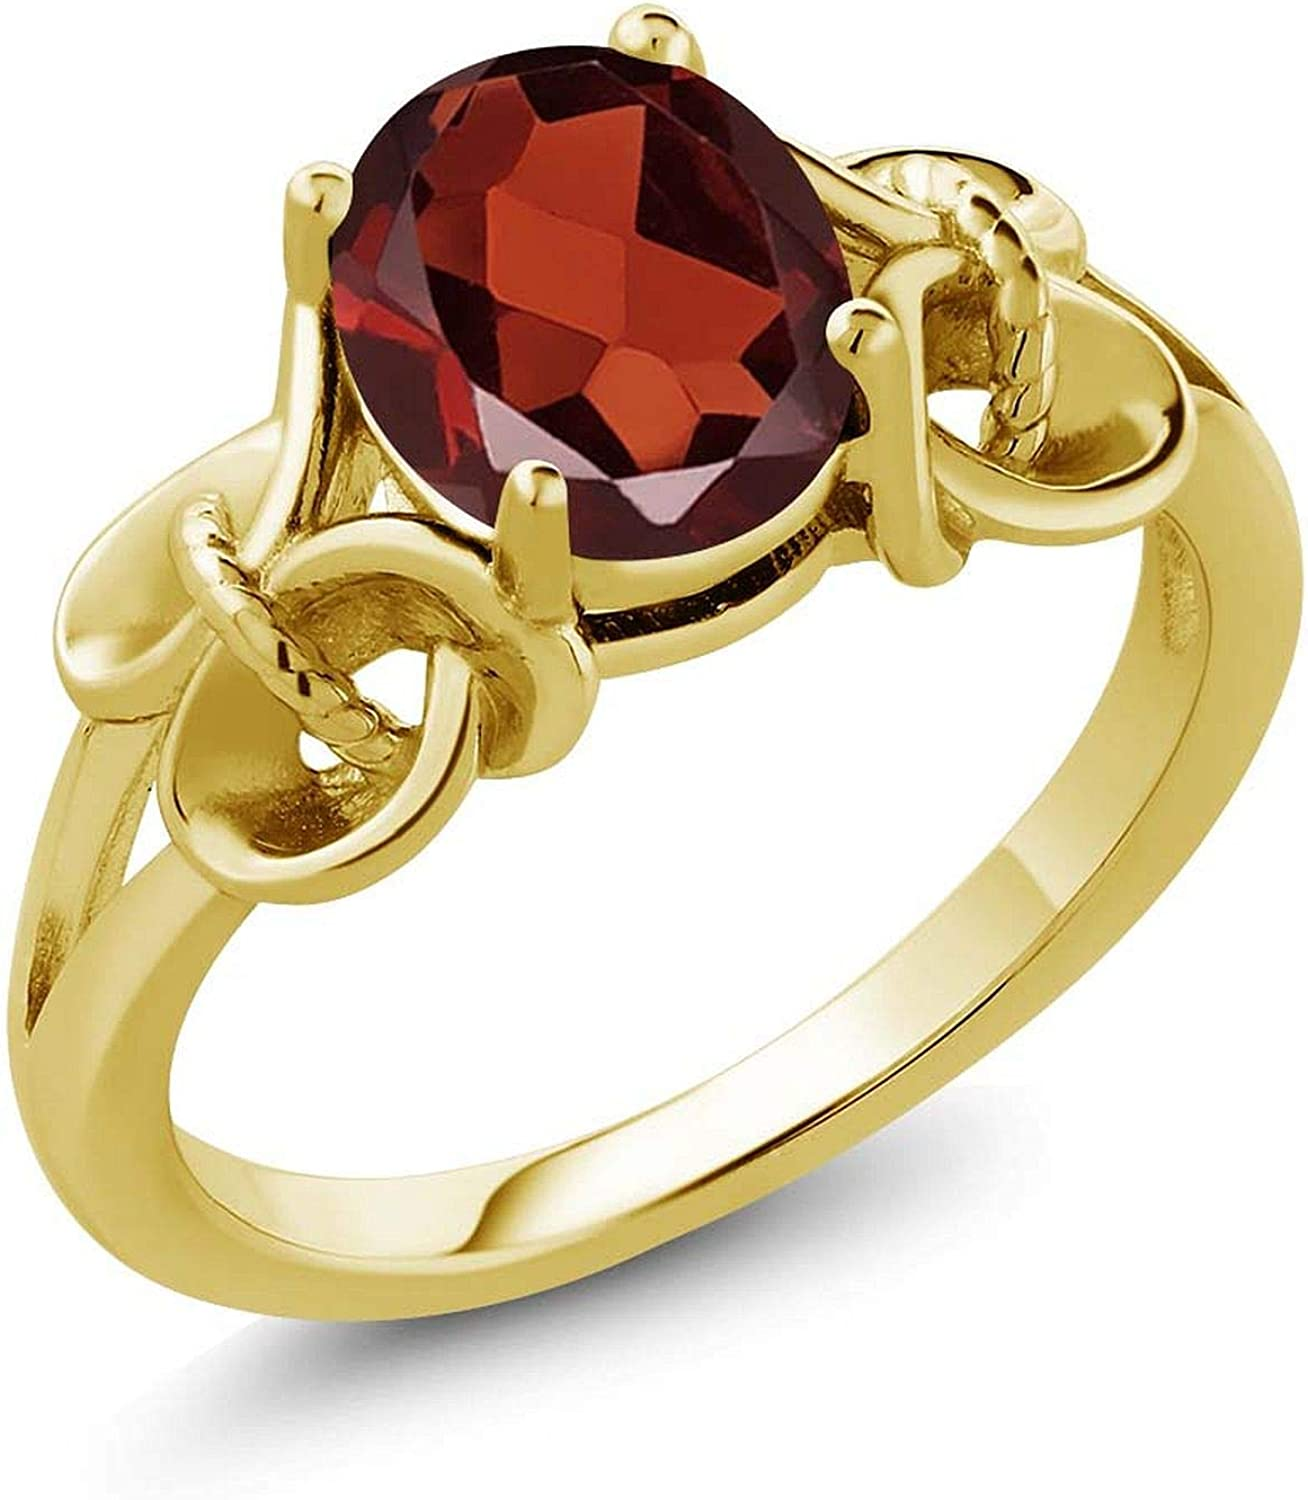 Gem Stone King 1.80 Ct Oval Red Garnet 18K Yellow Gold Plated Silver Women Engagement Ring (Available 5,6,7,8,9)